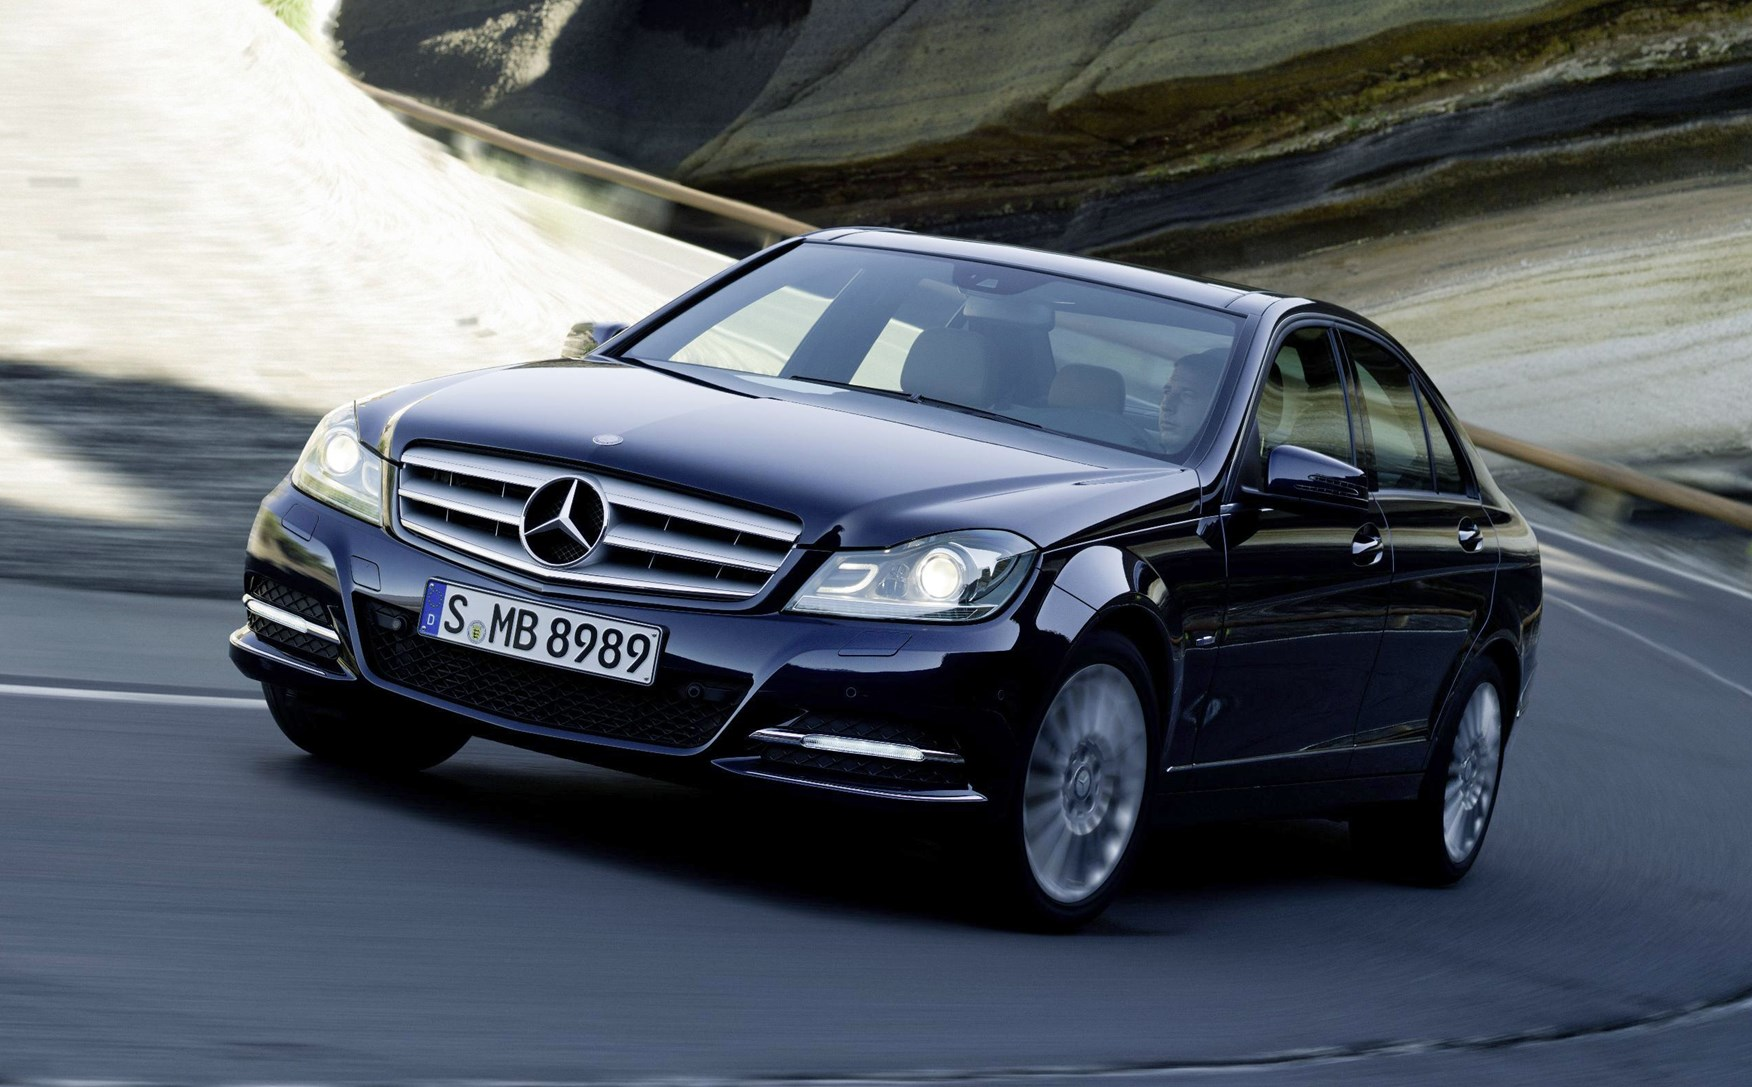 Used Mercedes-Benz C-Class Saloon (2007 - 2014) Review | Parkers